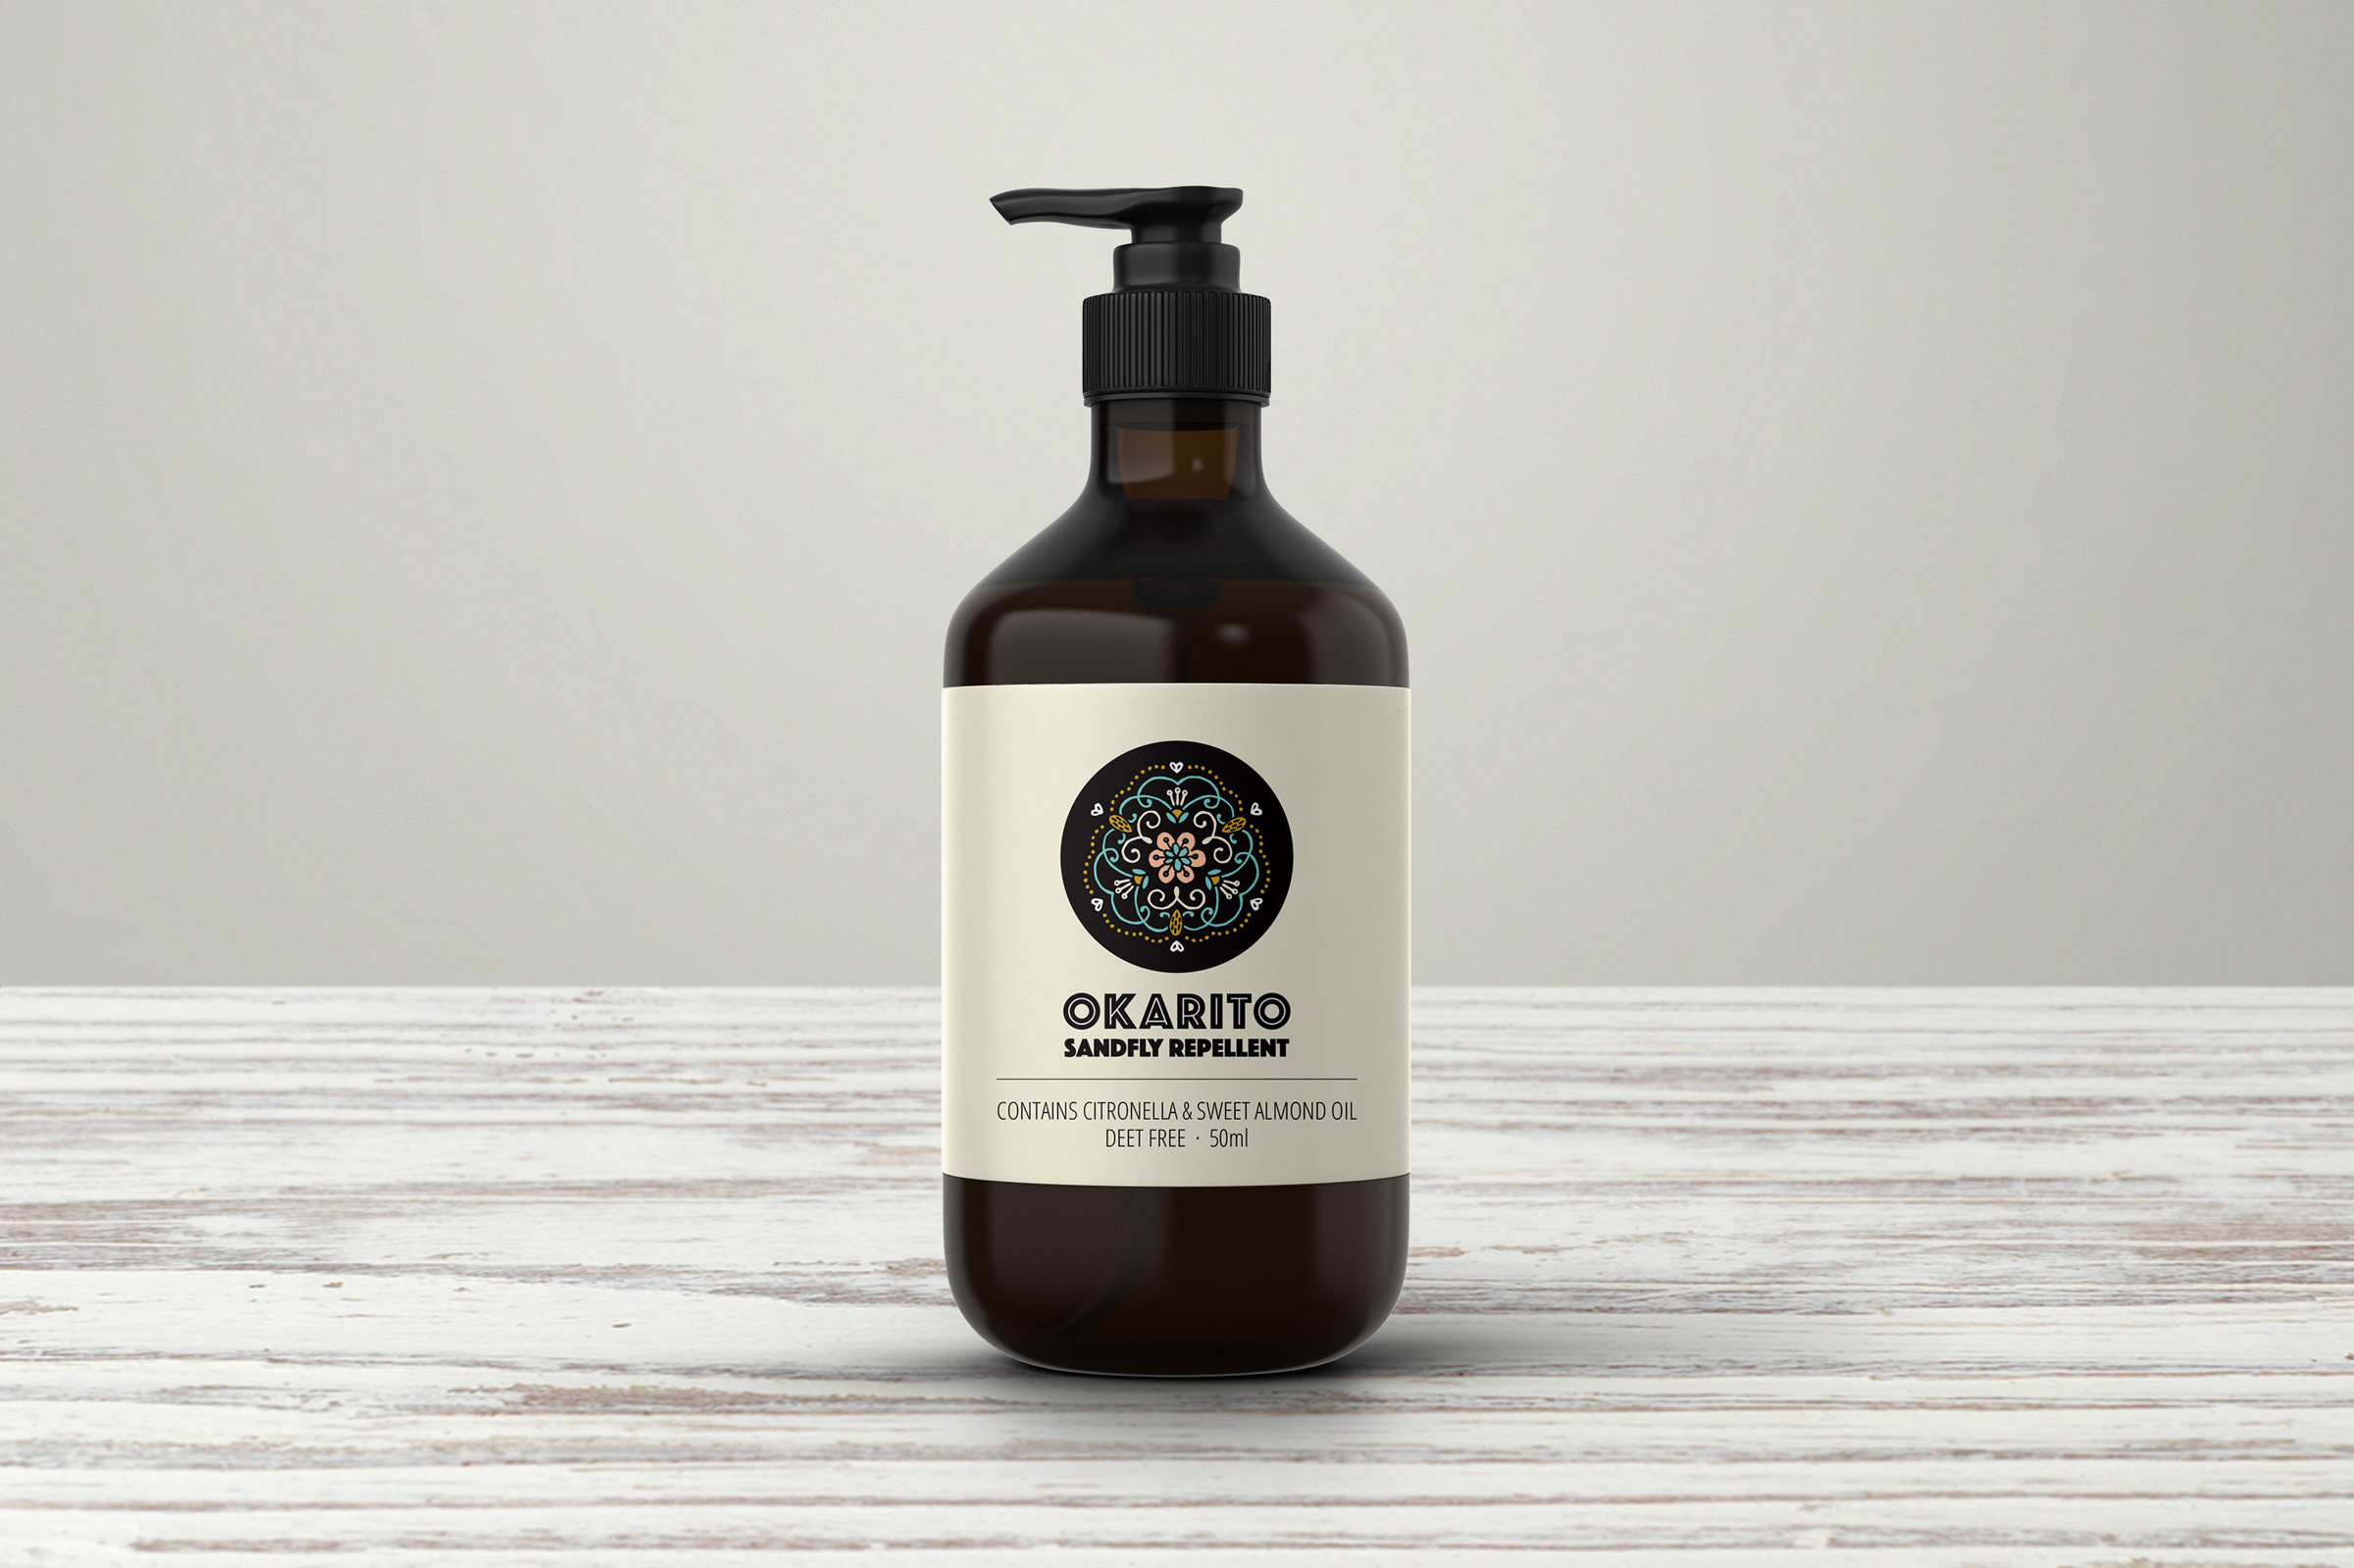 Okarito Sandfly Repellent | Packaging design